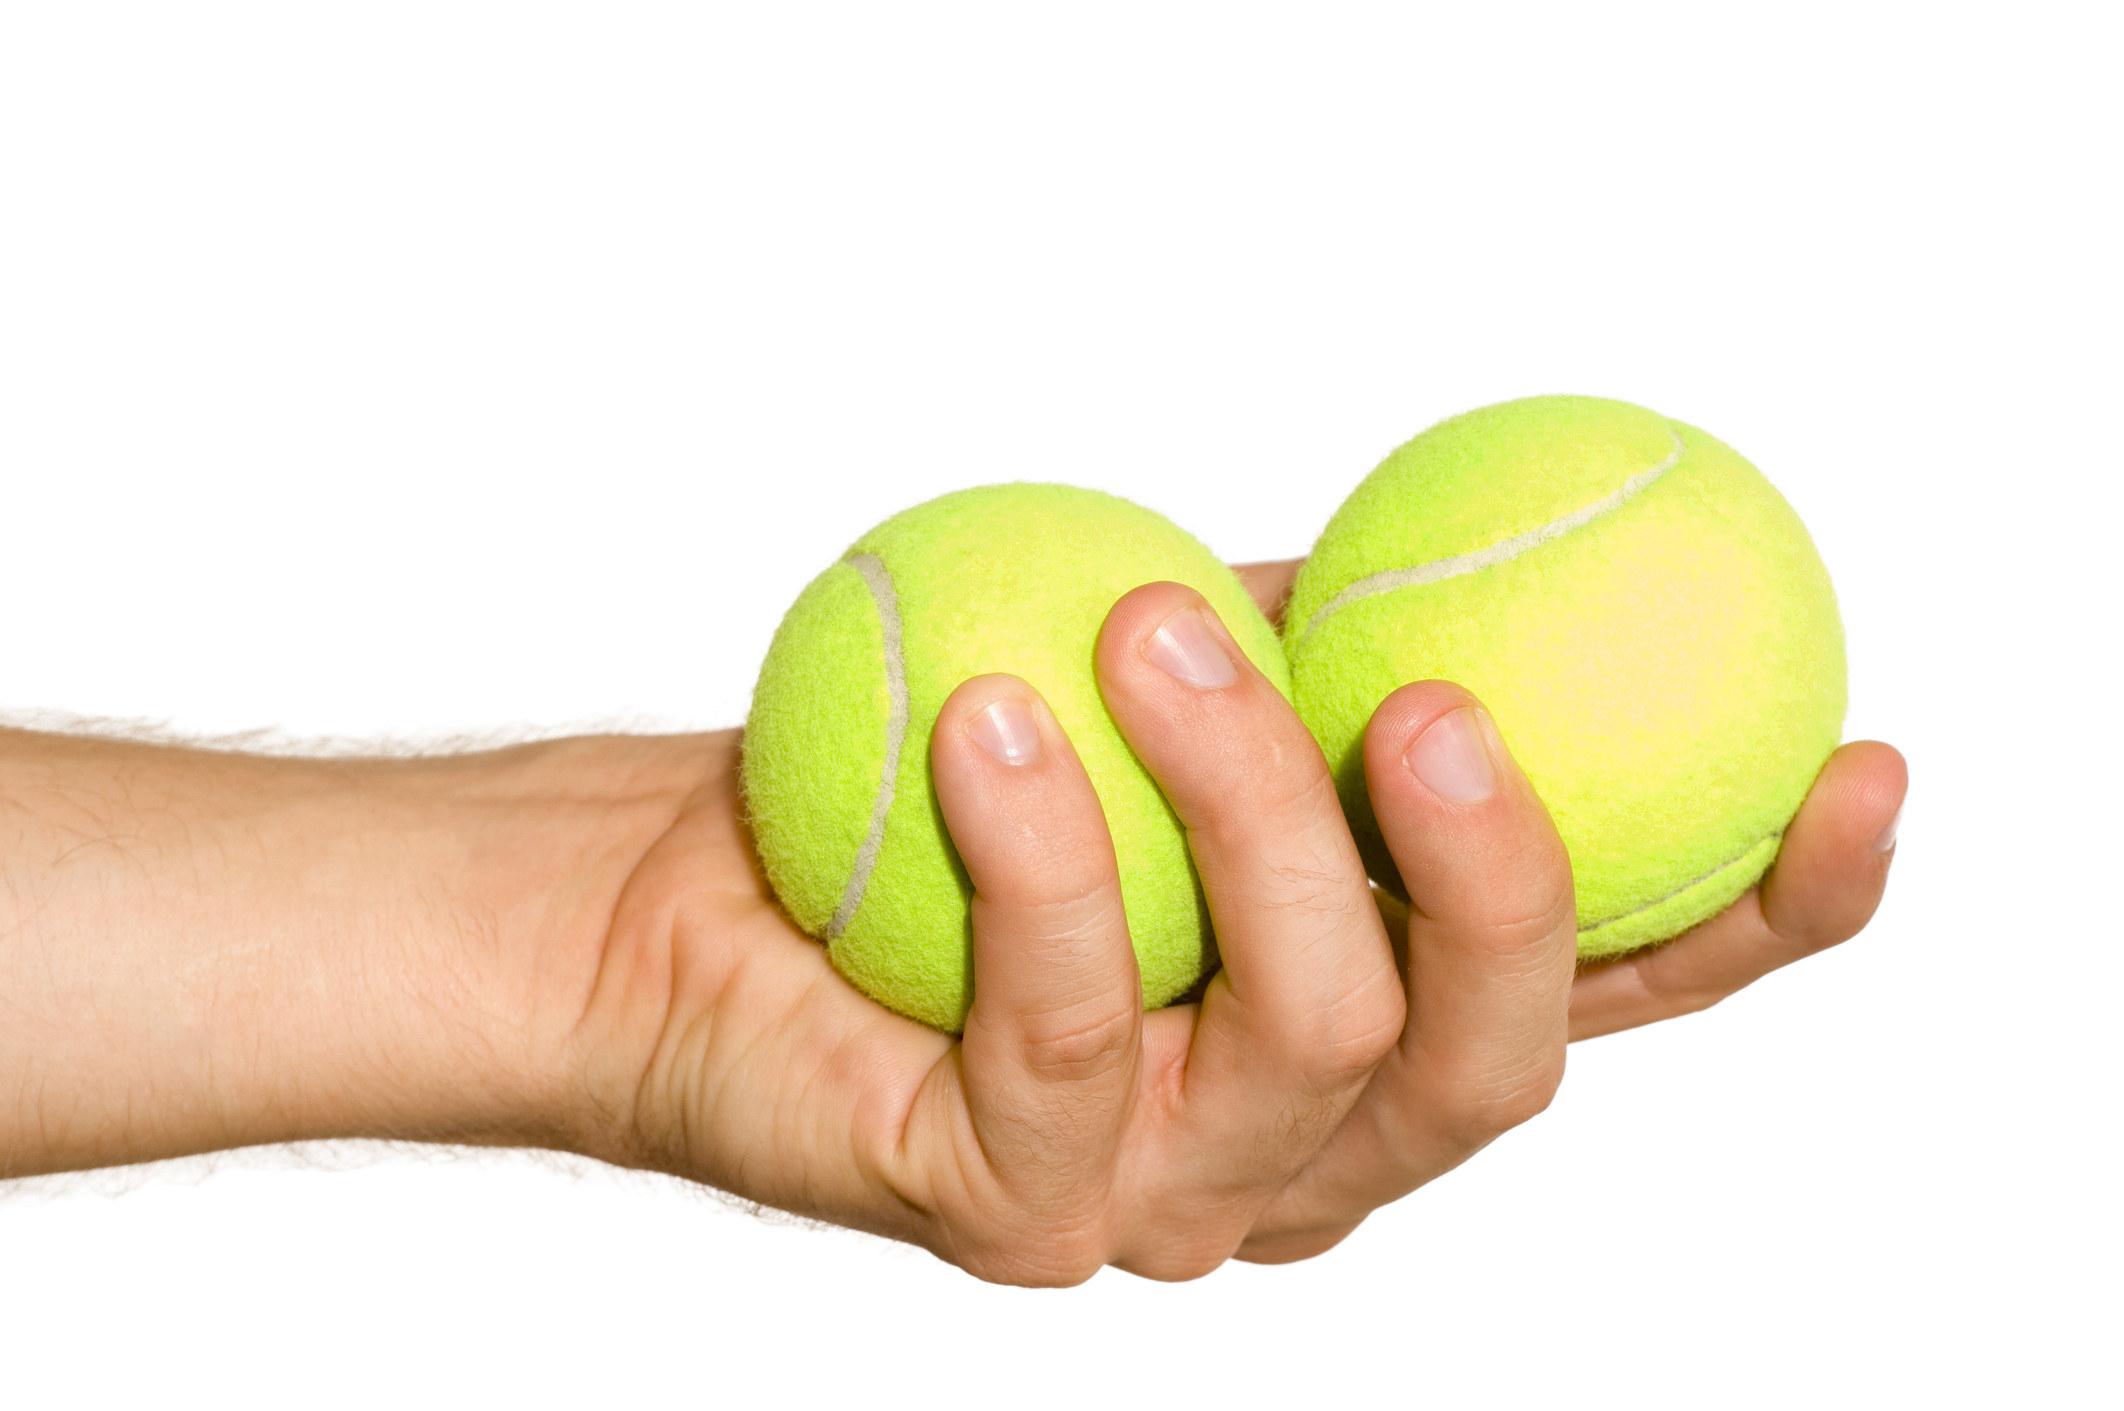 Man holding two tennis balls in his hand